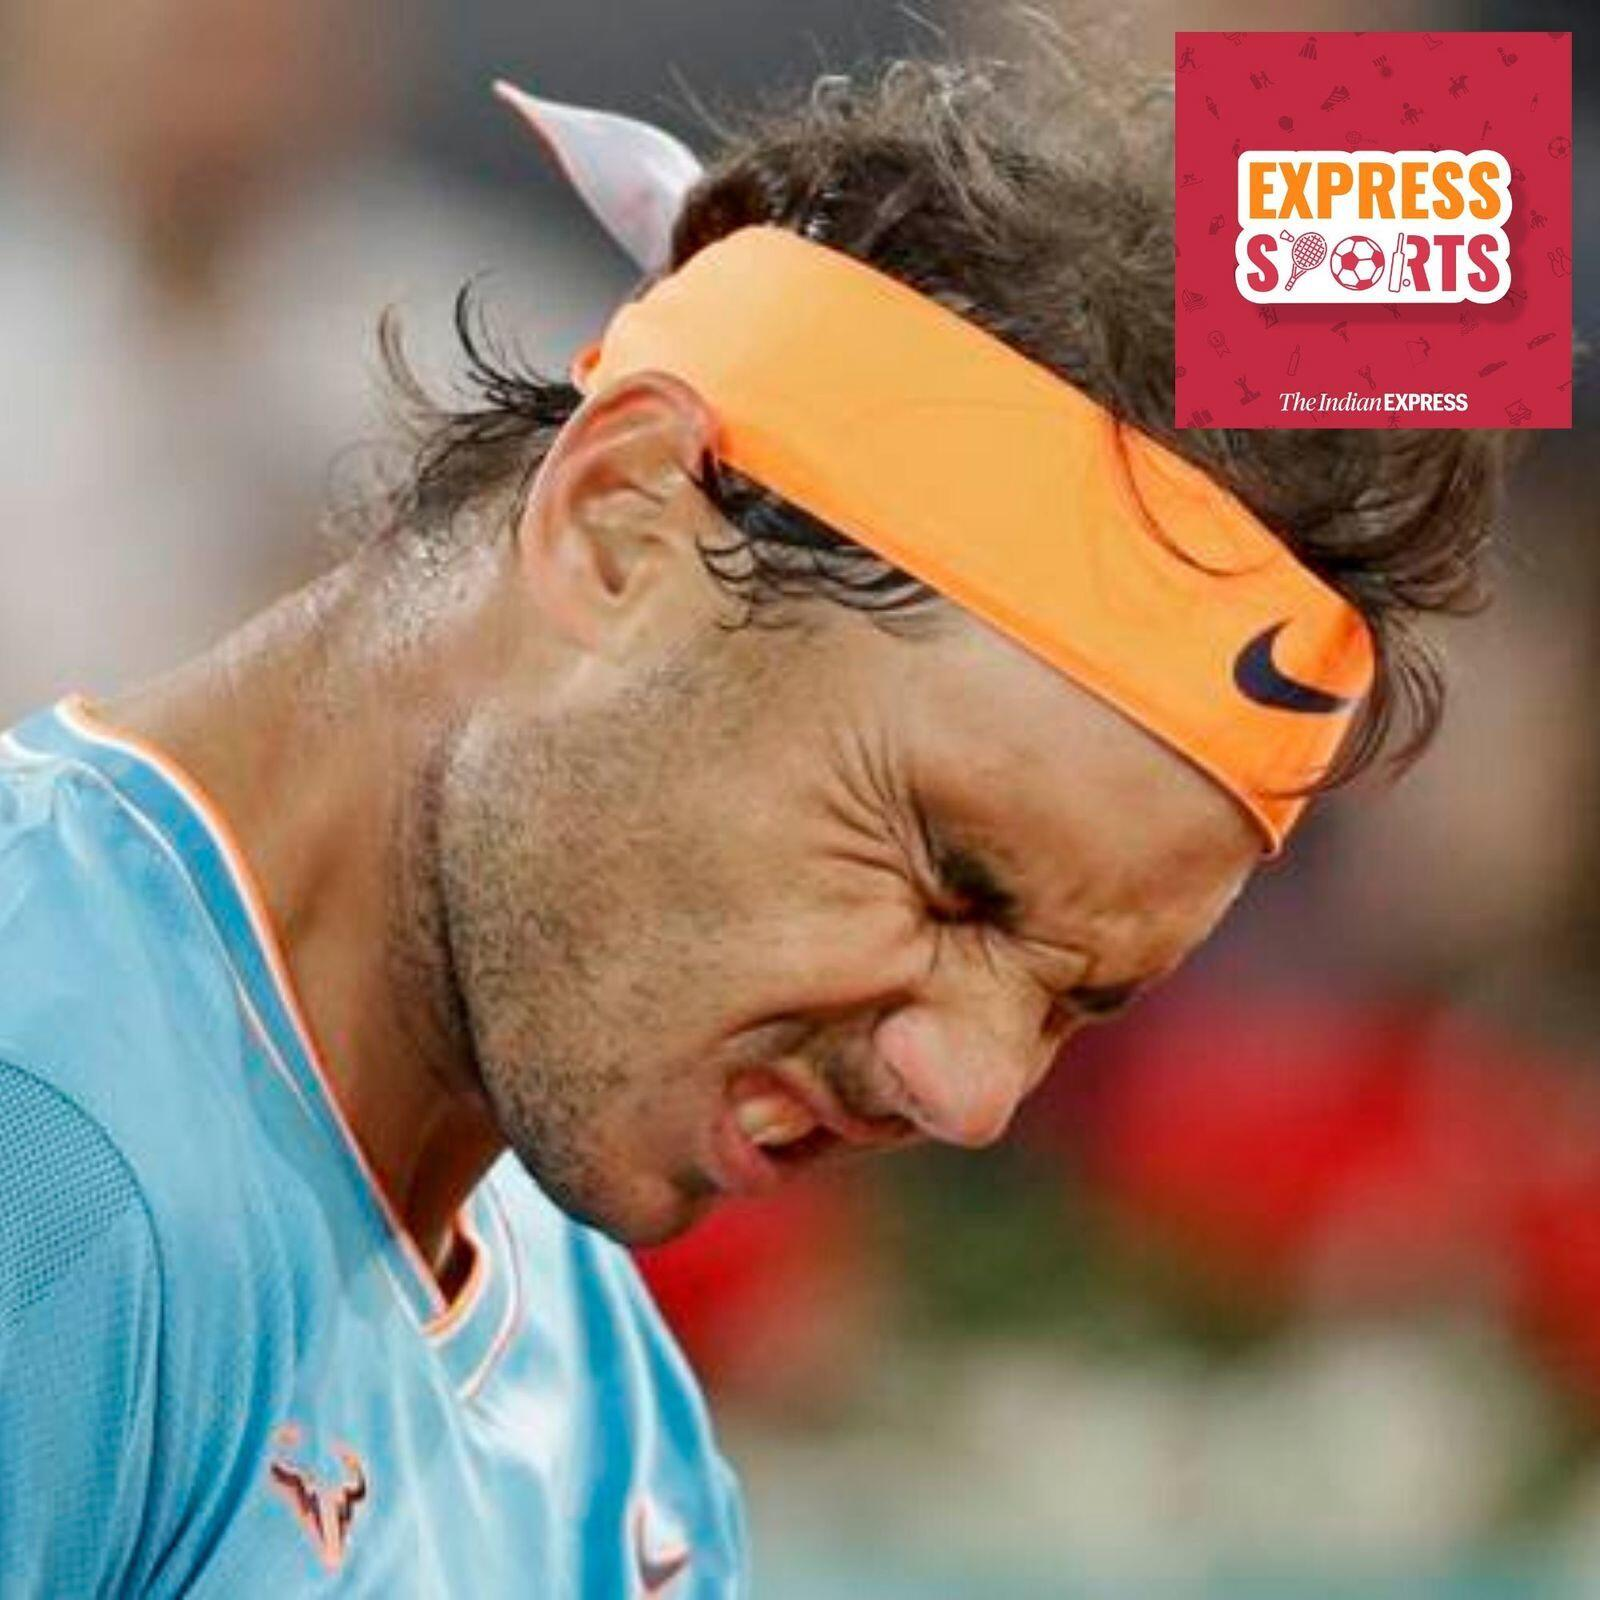 71: Old Scores: One of the biggest upsets in Tennis history